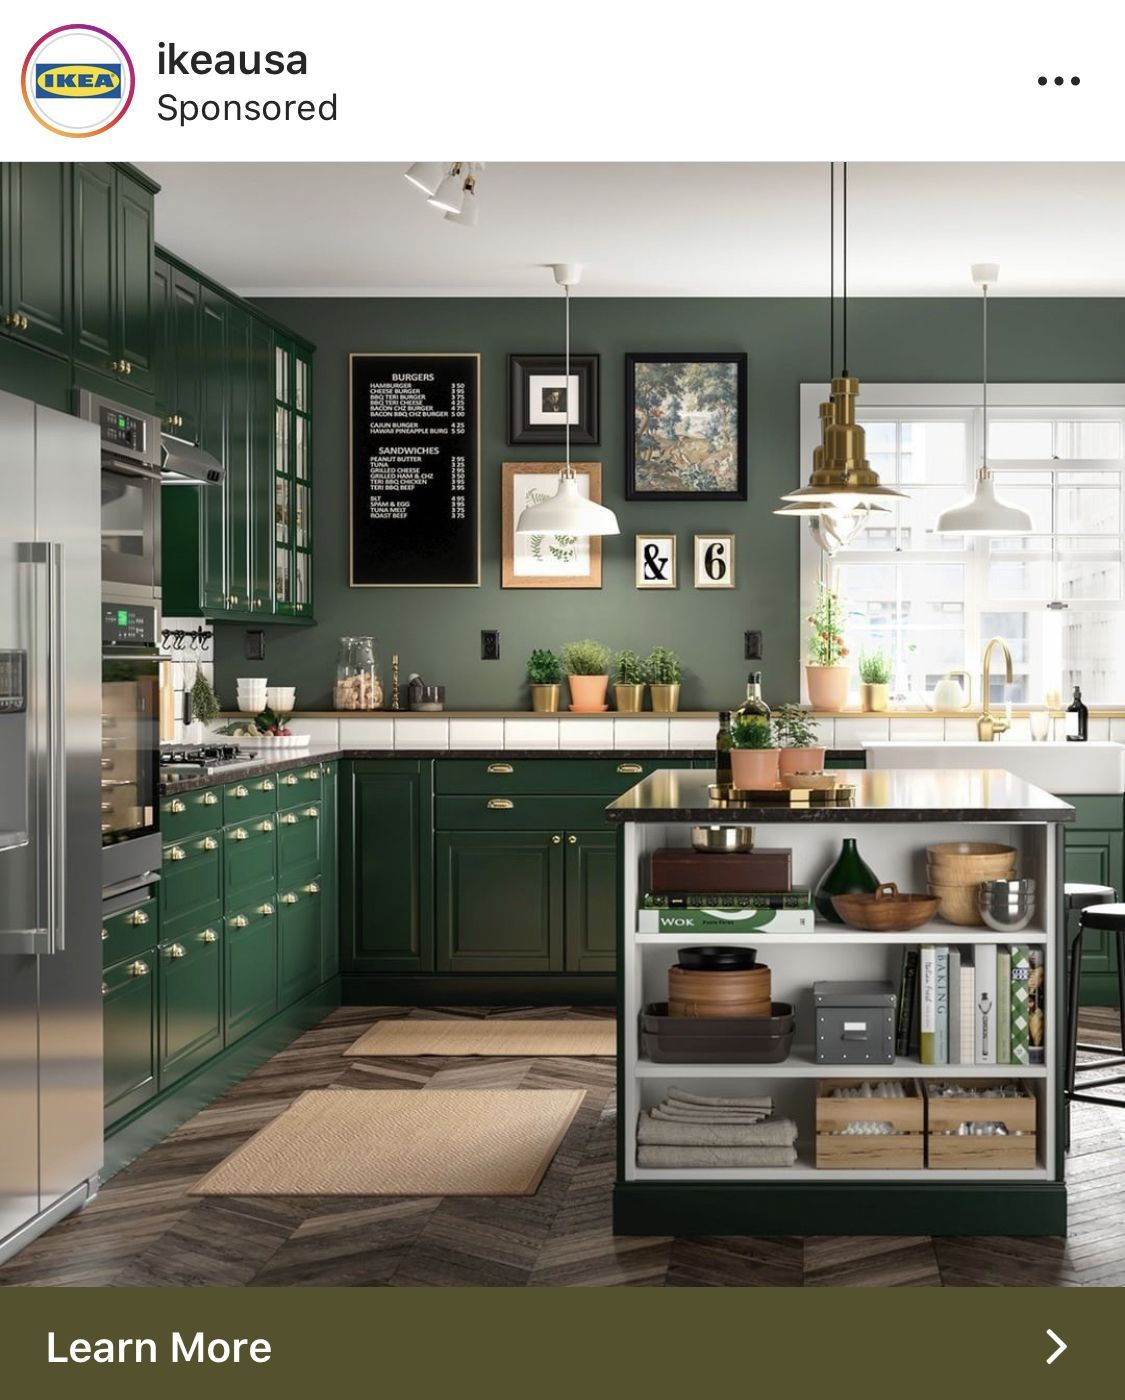 Green Kitchen Cabinets Ikea Cabinets Cabinets Green Ikea Kitchen Green Kitchen Cabinets Classic Kitchens Green Kitchen